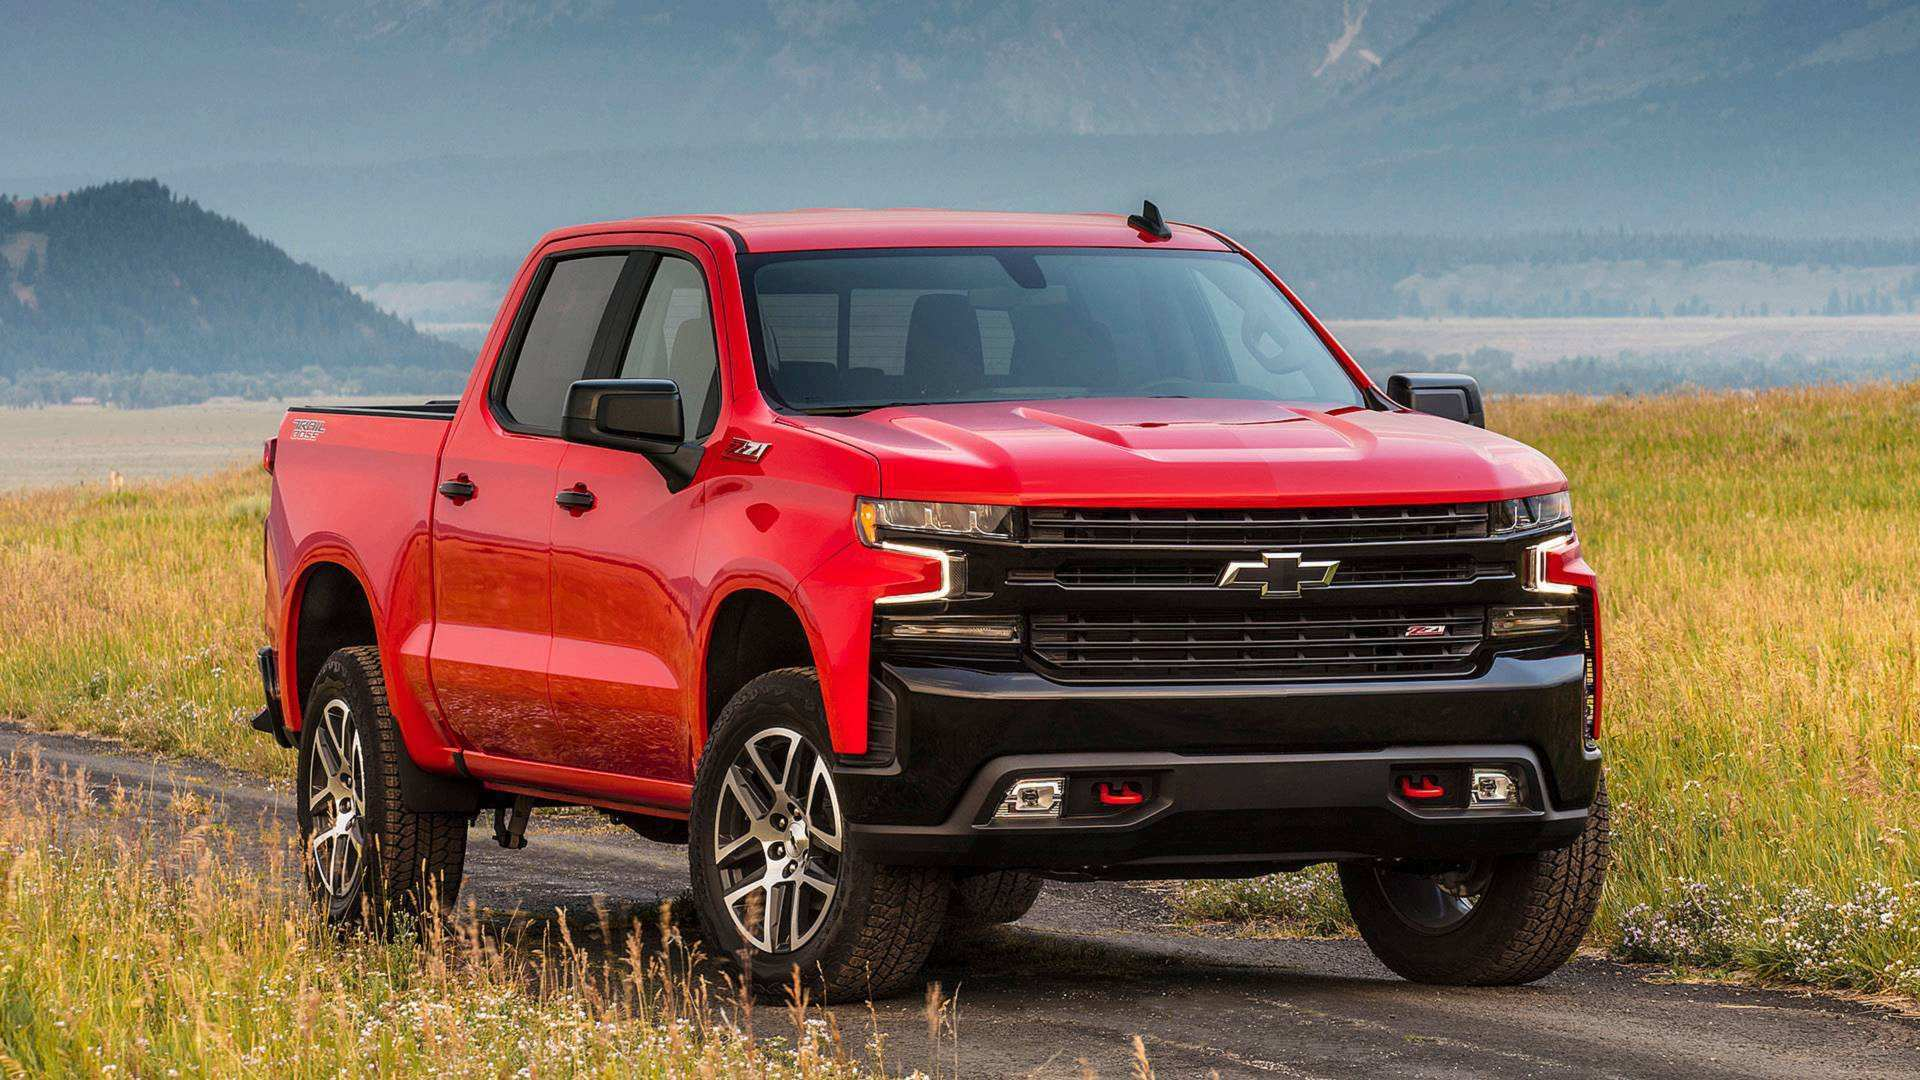 34 All New 2019 Chevrolet Silverado Redesign And Concept